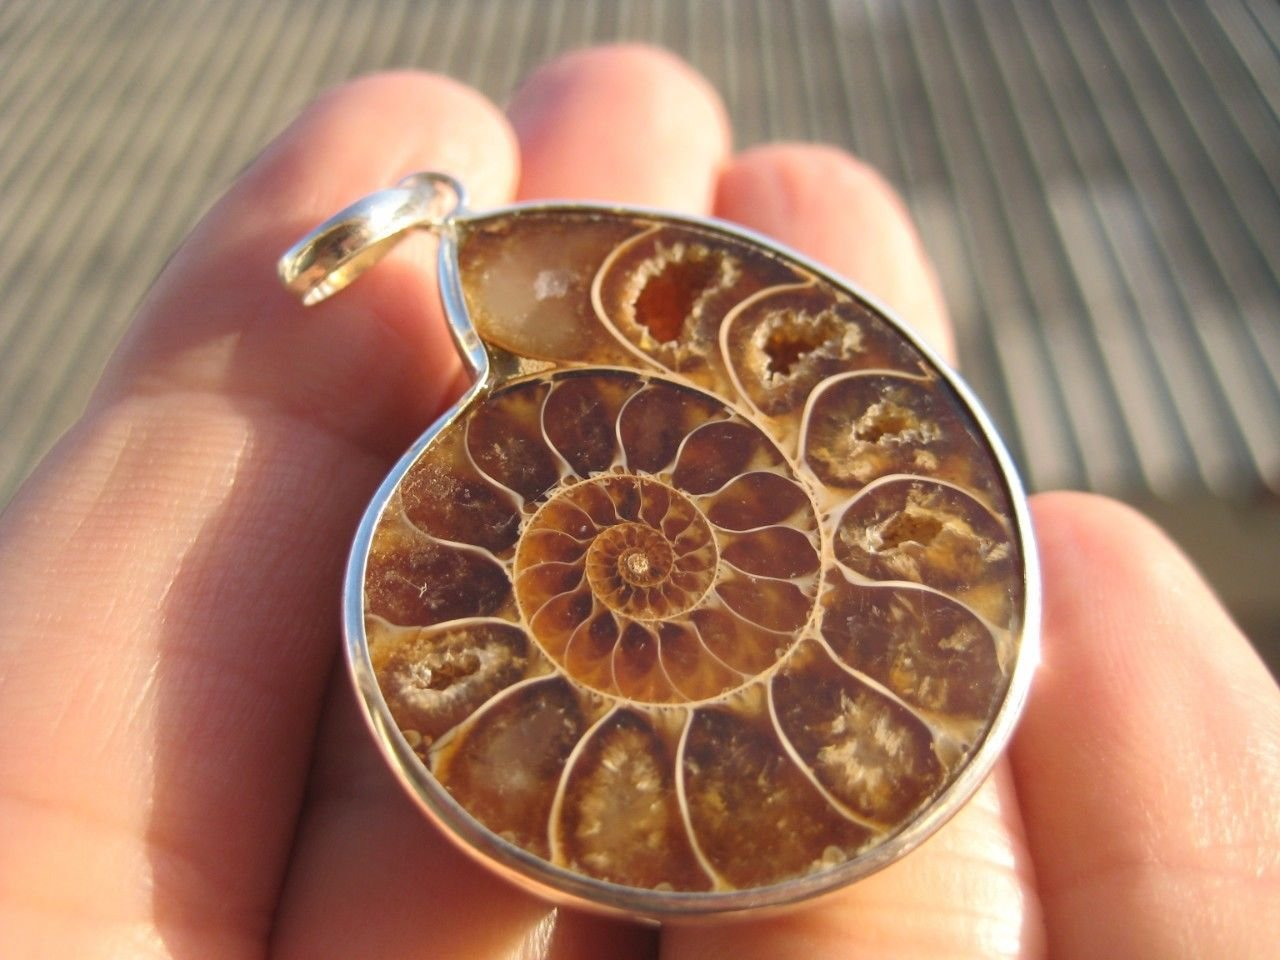 925 silver Africa Ammonite Fossil necklace pendant  Thailand jewelry art A30